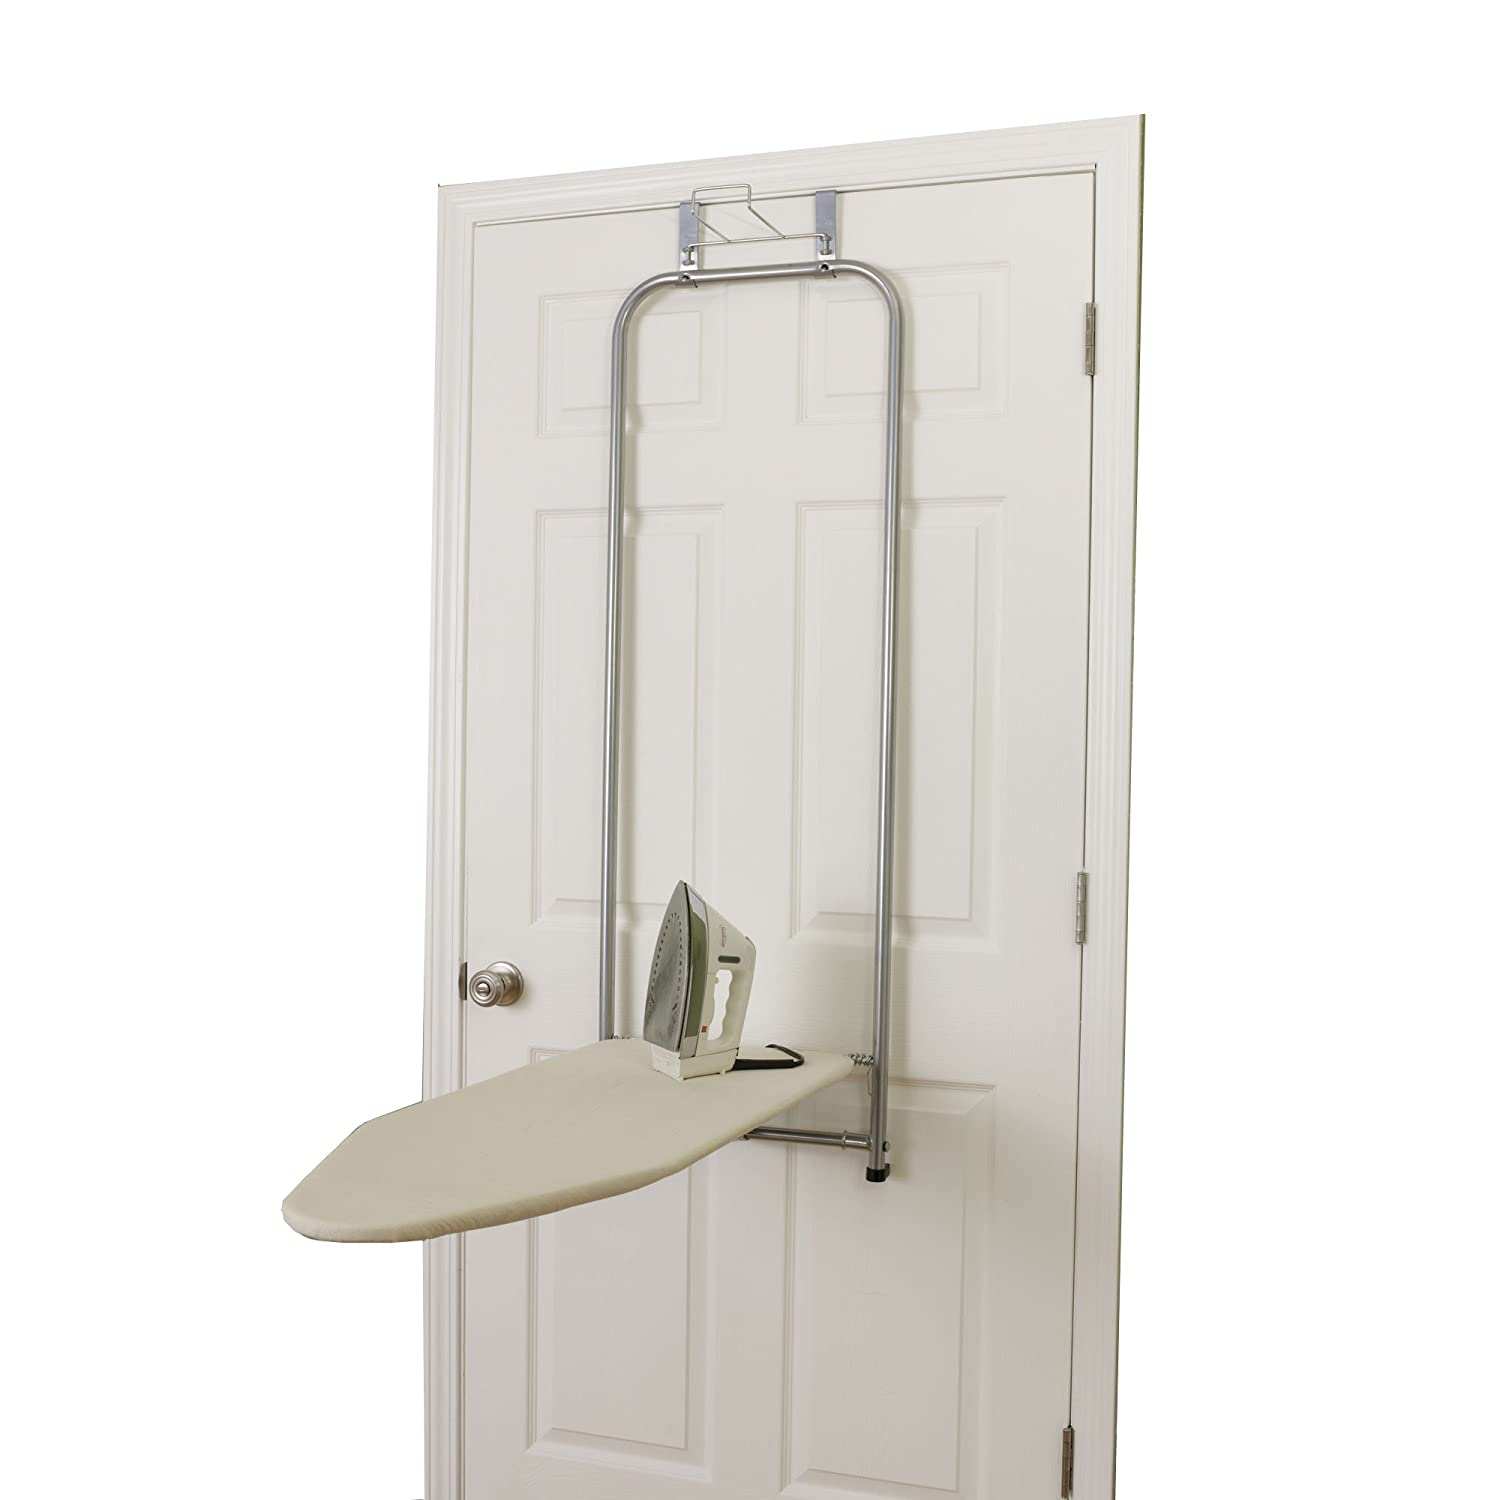 Household Essentials 1 Over The Door Ironing Board with